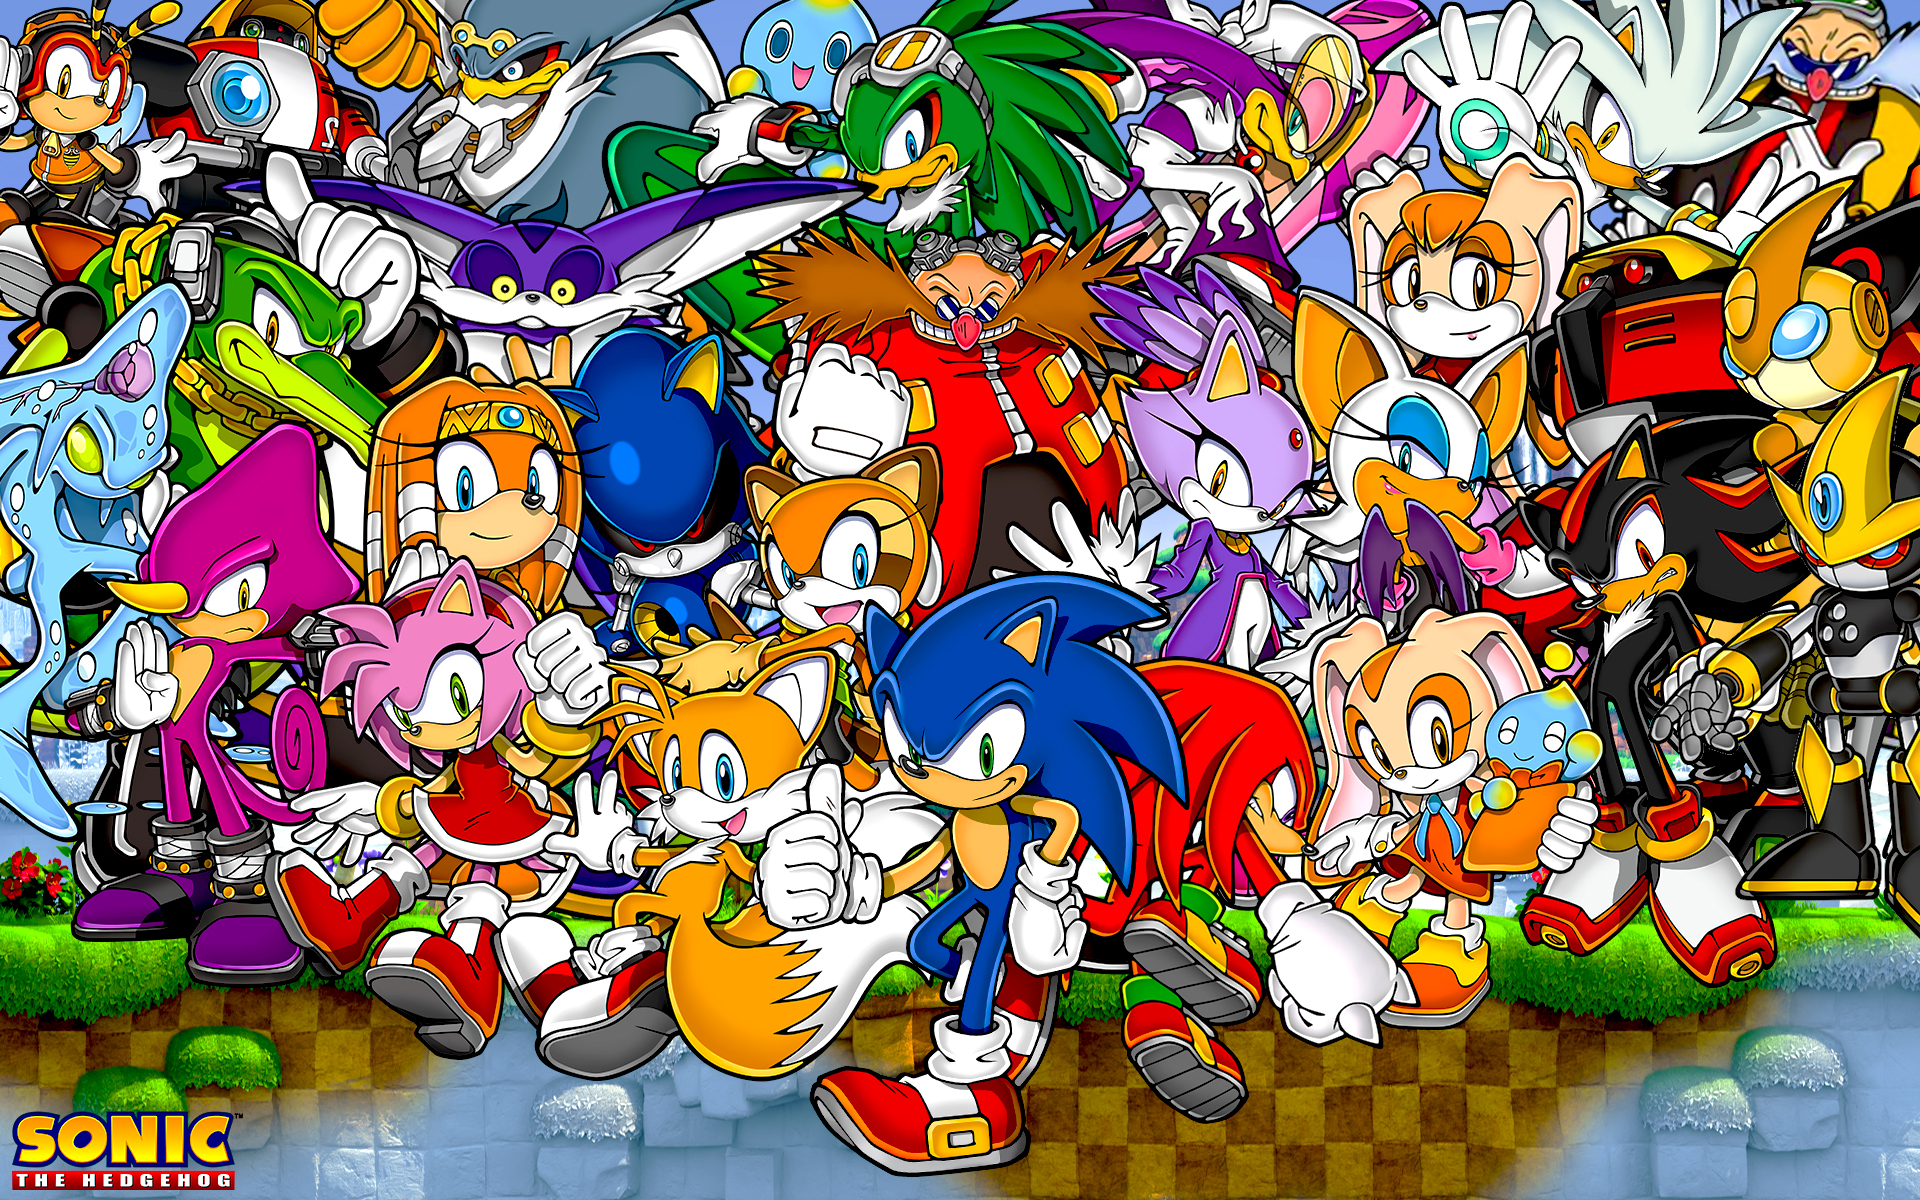 Sonic The Hedgehog And Friends Wallpaper By Sonicthehedgehogbg On Deviantart